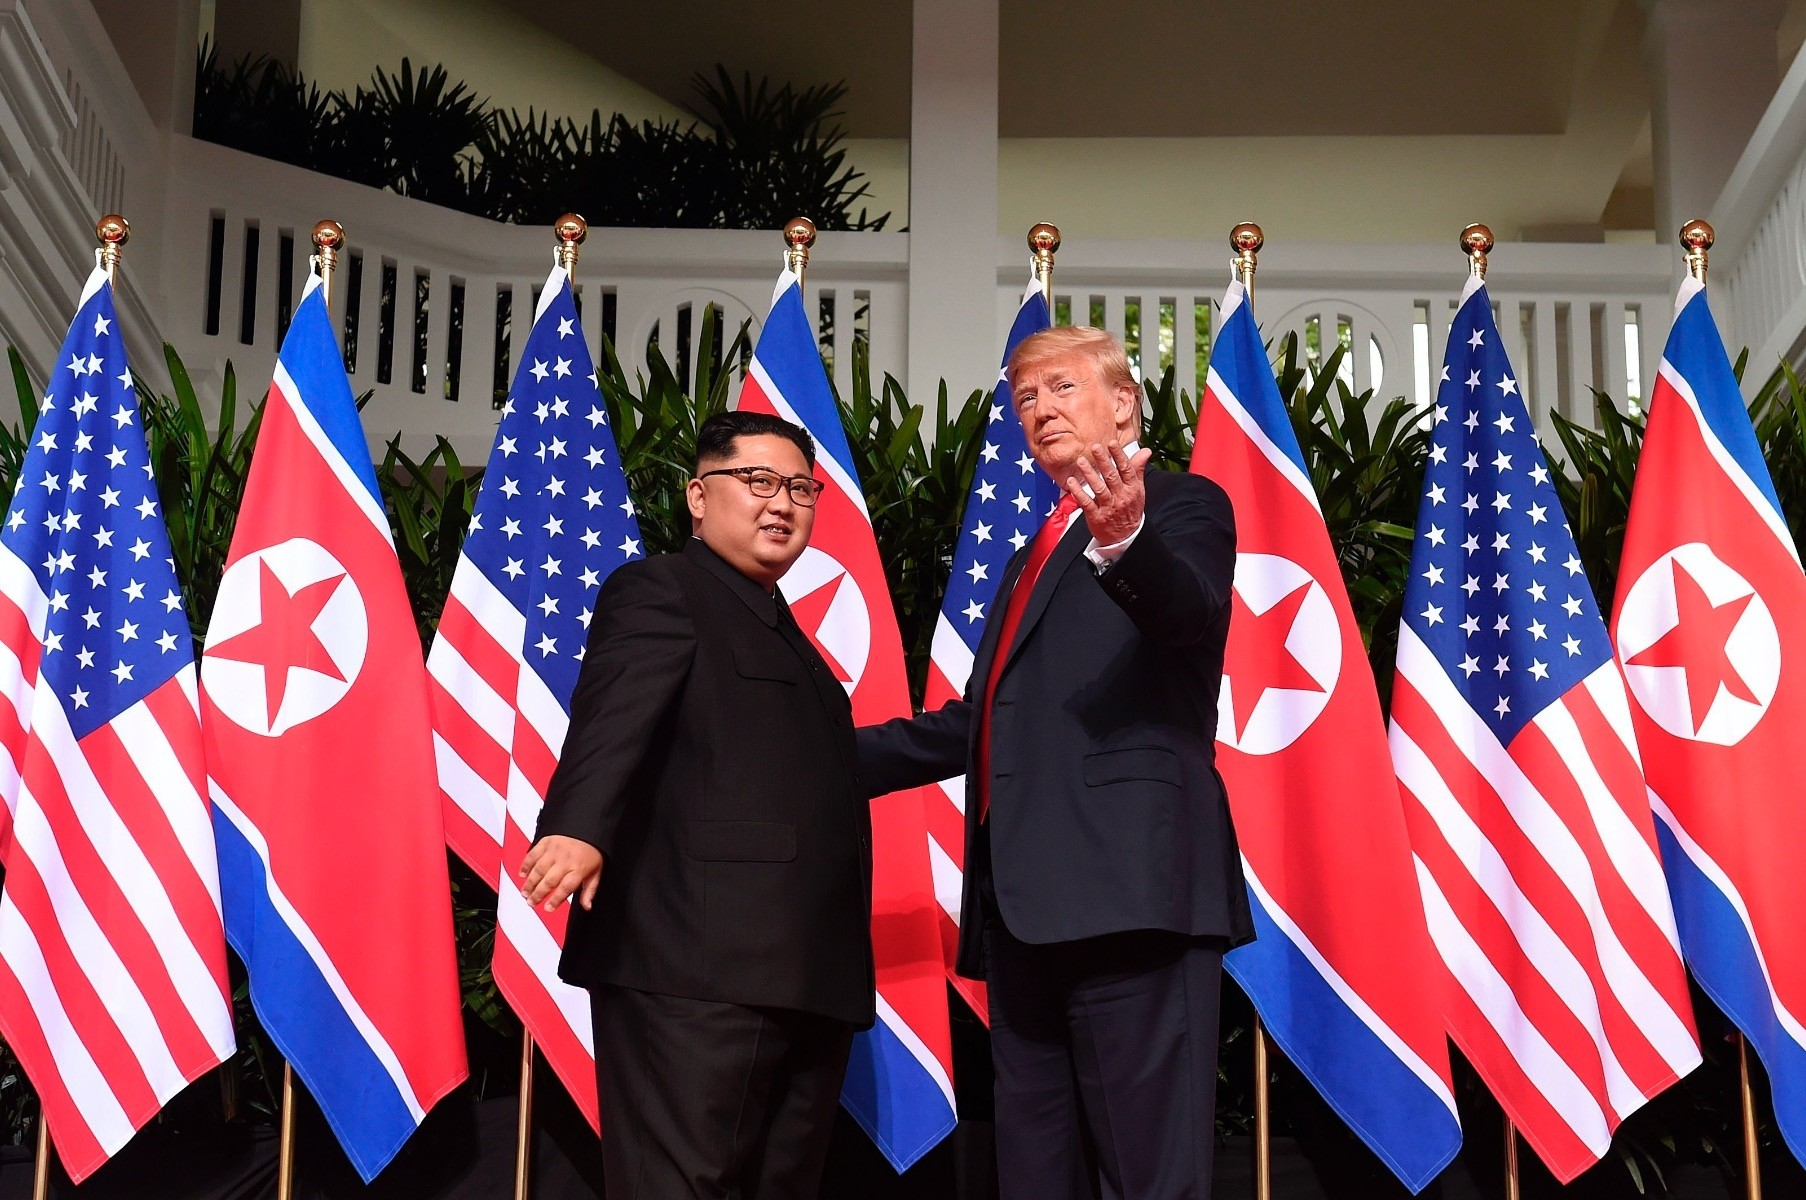 President Trump gestures as he meets with North Korea's Kim Jong Un at the start of their historic summit, Singapore, June 12.